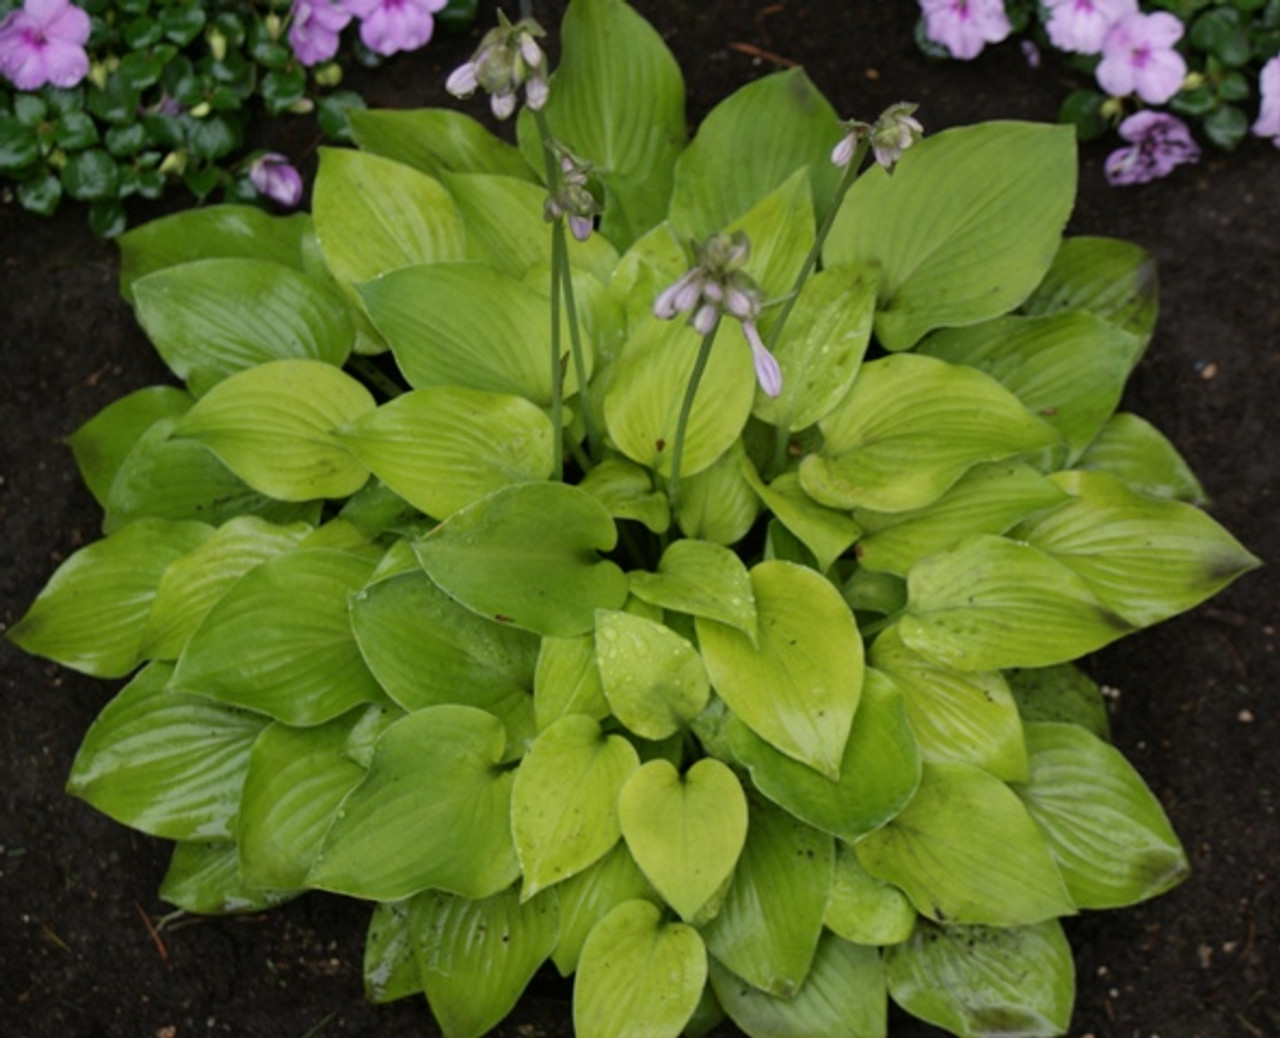 Wogon Gold Hosta Shade Perennial Small Yellow Hosta Plant